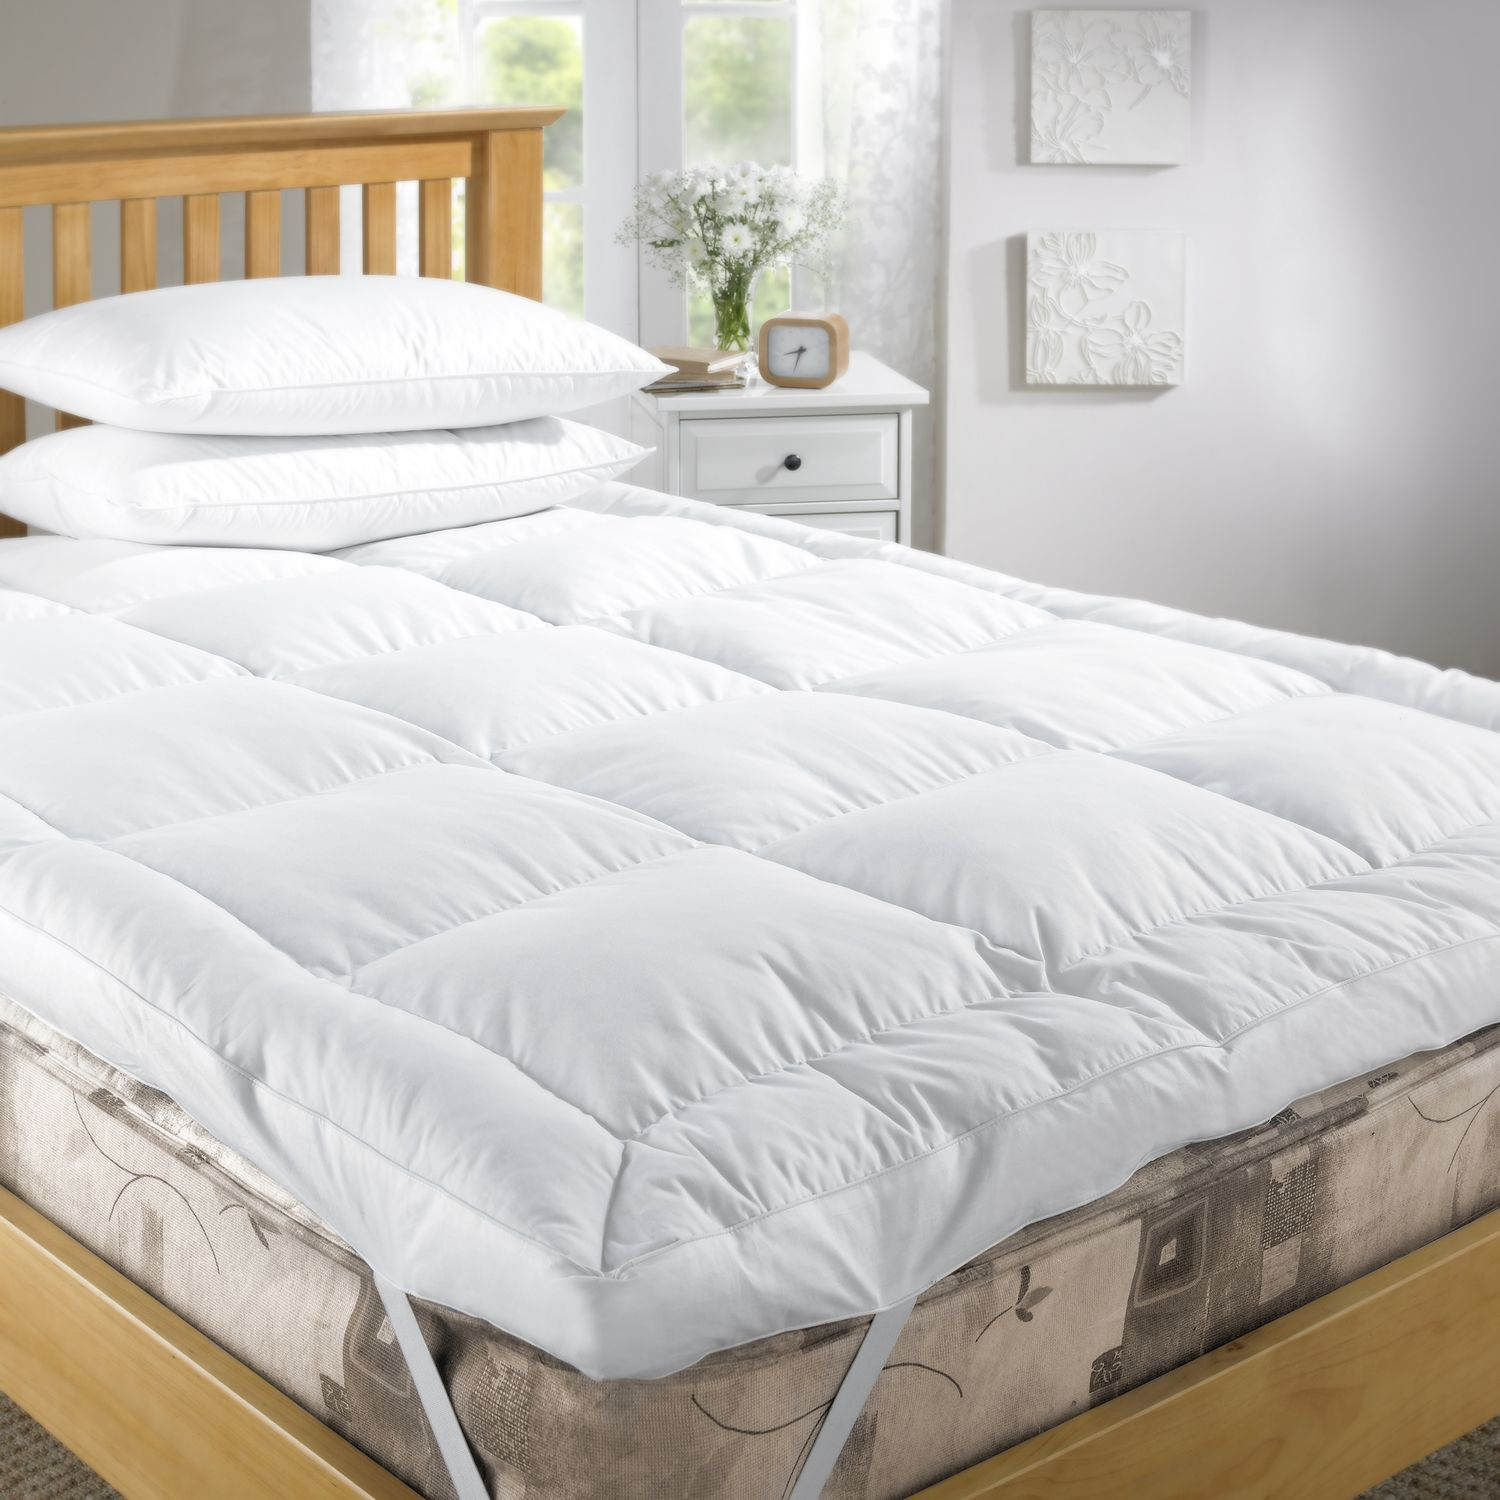 Tips for Choosing the Best Bedroom Mattress Mattress